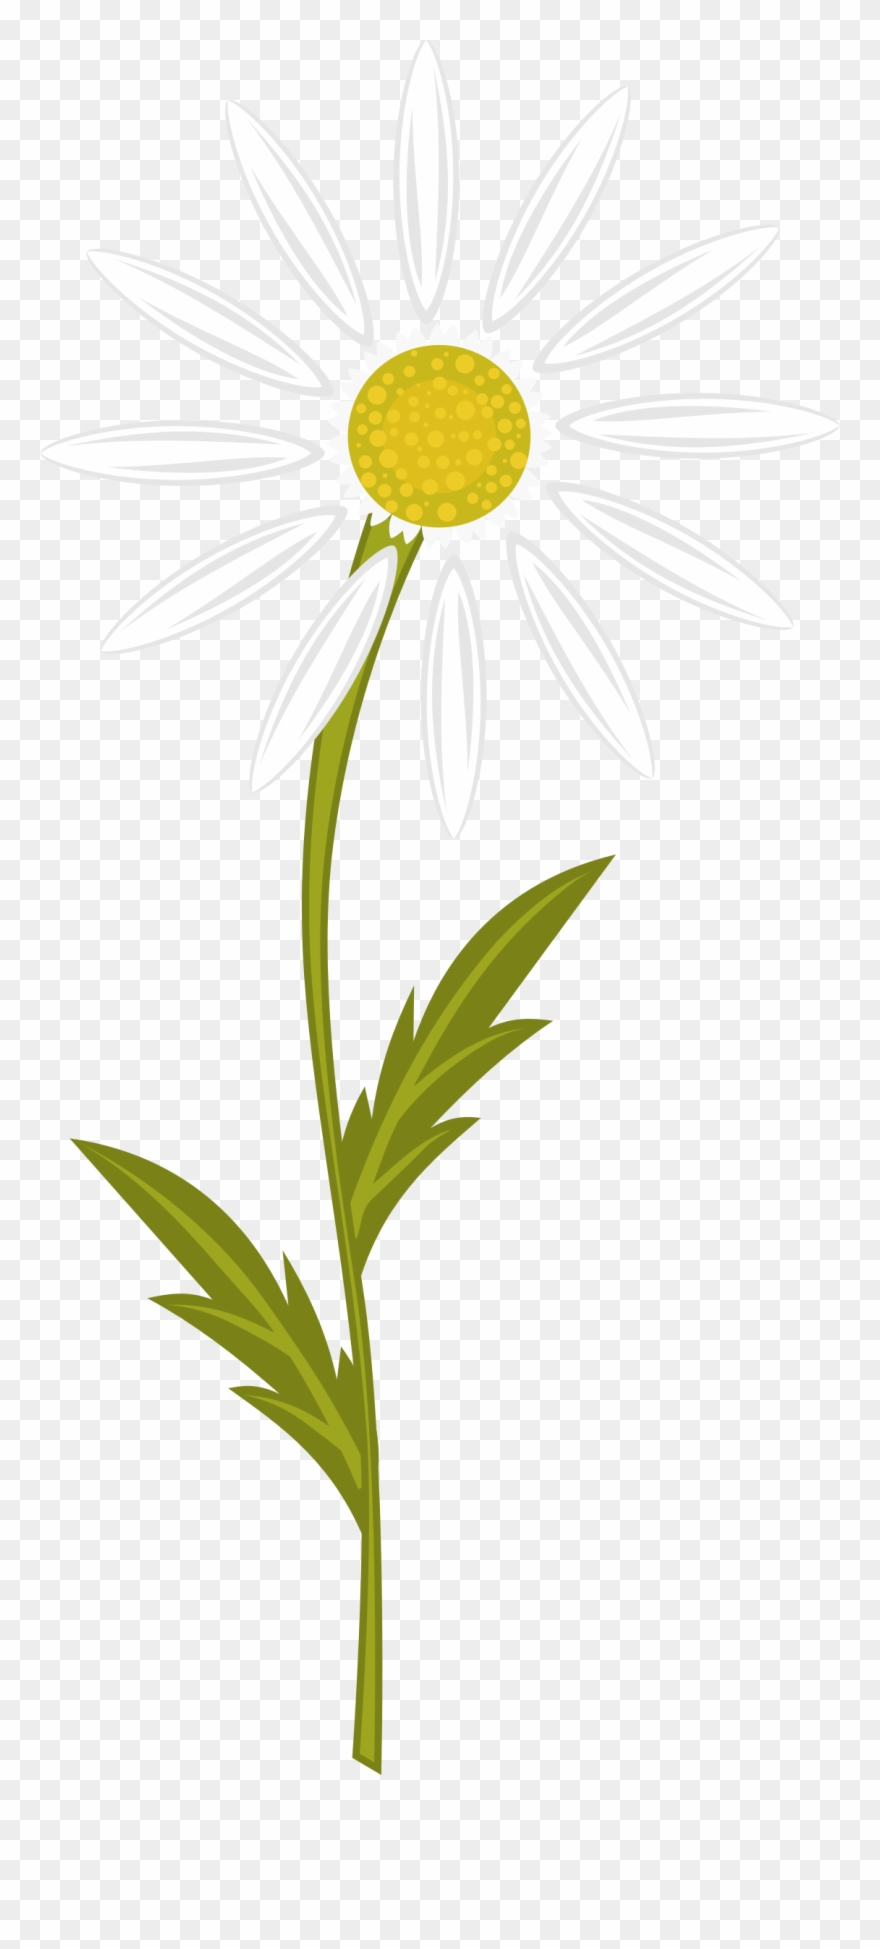 medium resolution of clipart transparent download clipart daisy free on camomile clipart png download